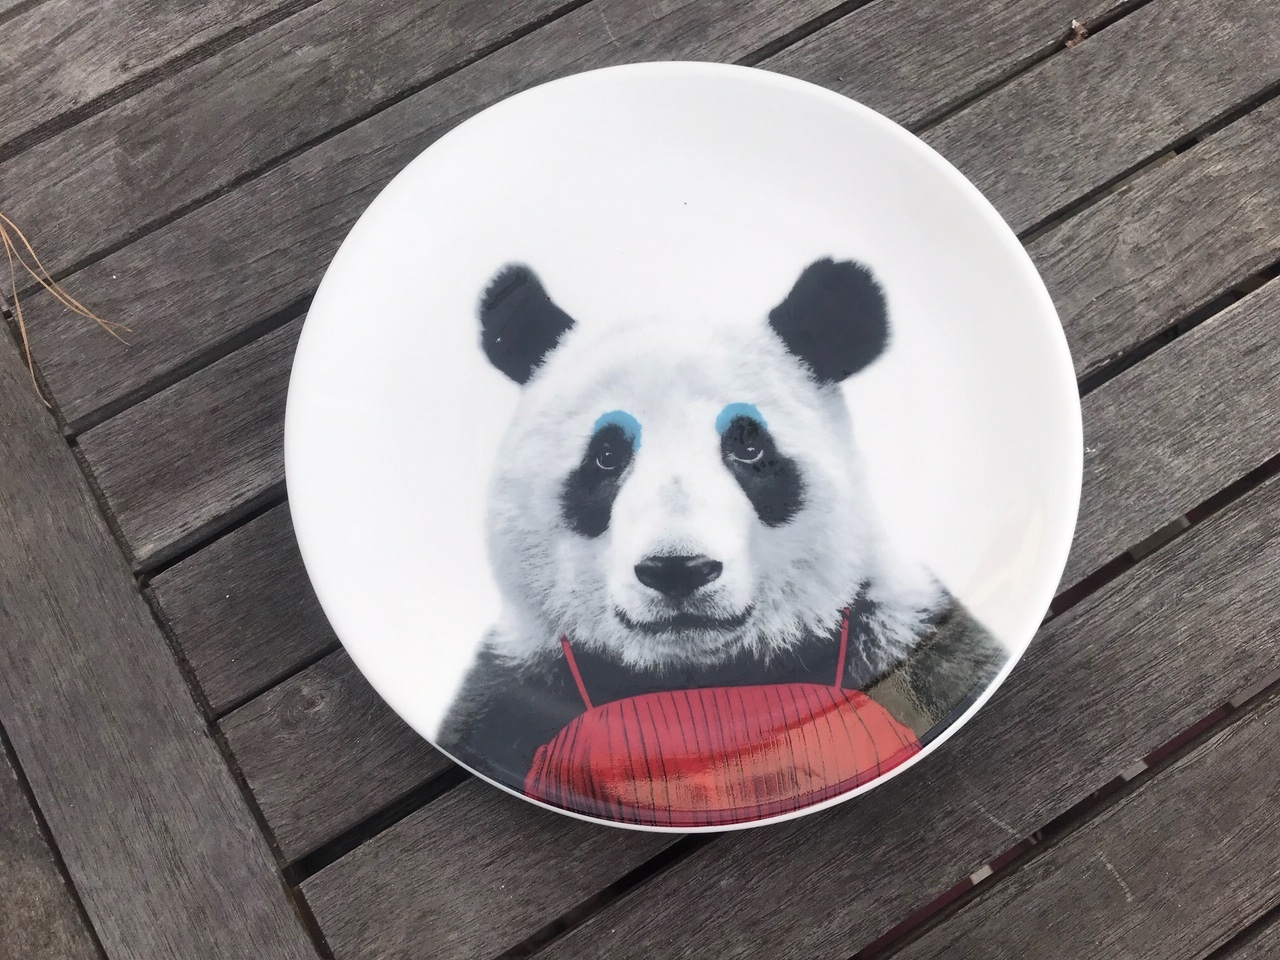 "New Wild Dining ""JustMustard"" Brand Patricia Panda Plate: 28,800 ppm Lead when tested with an XRF instrument."